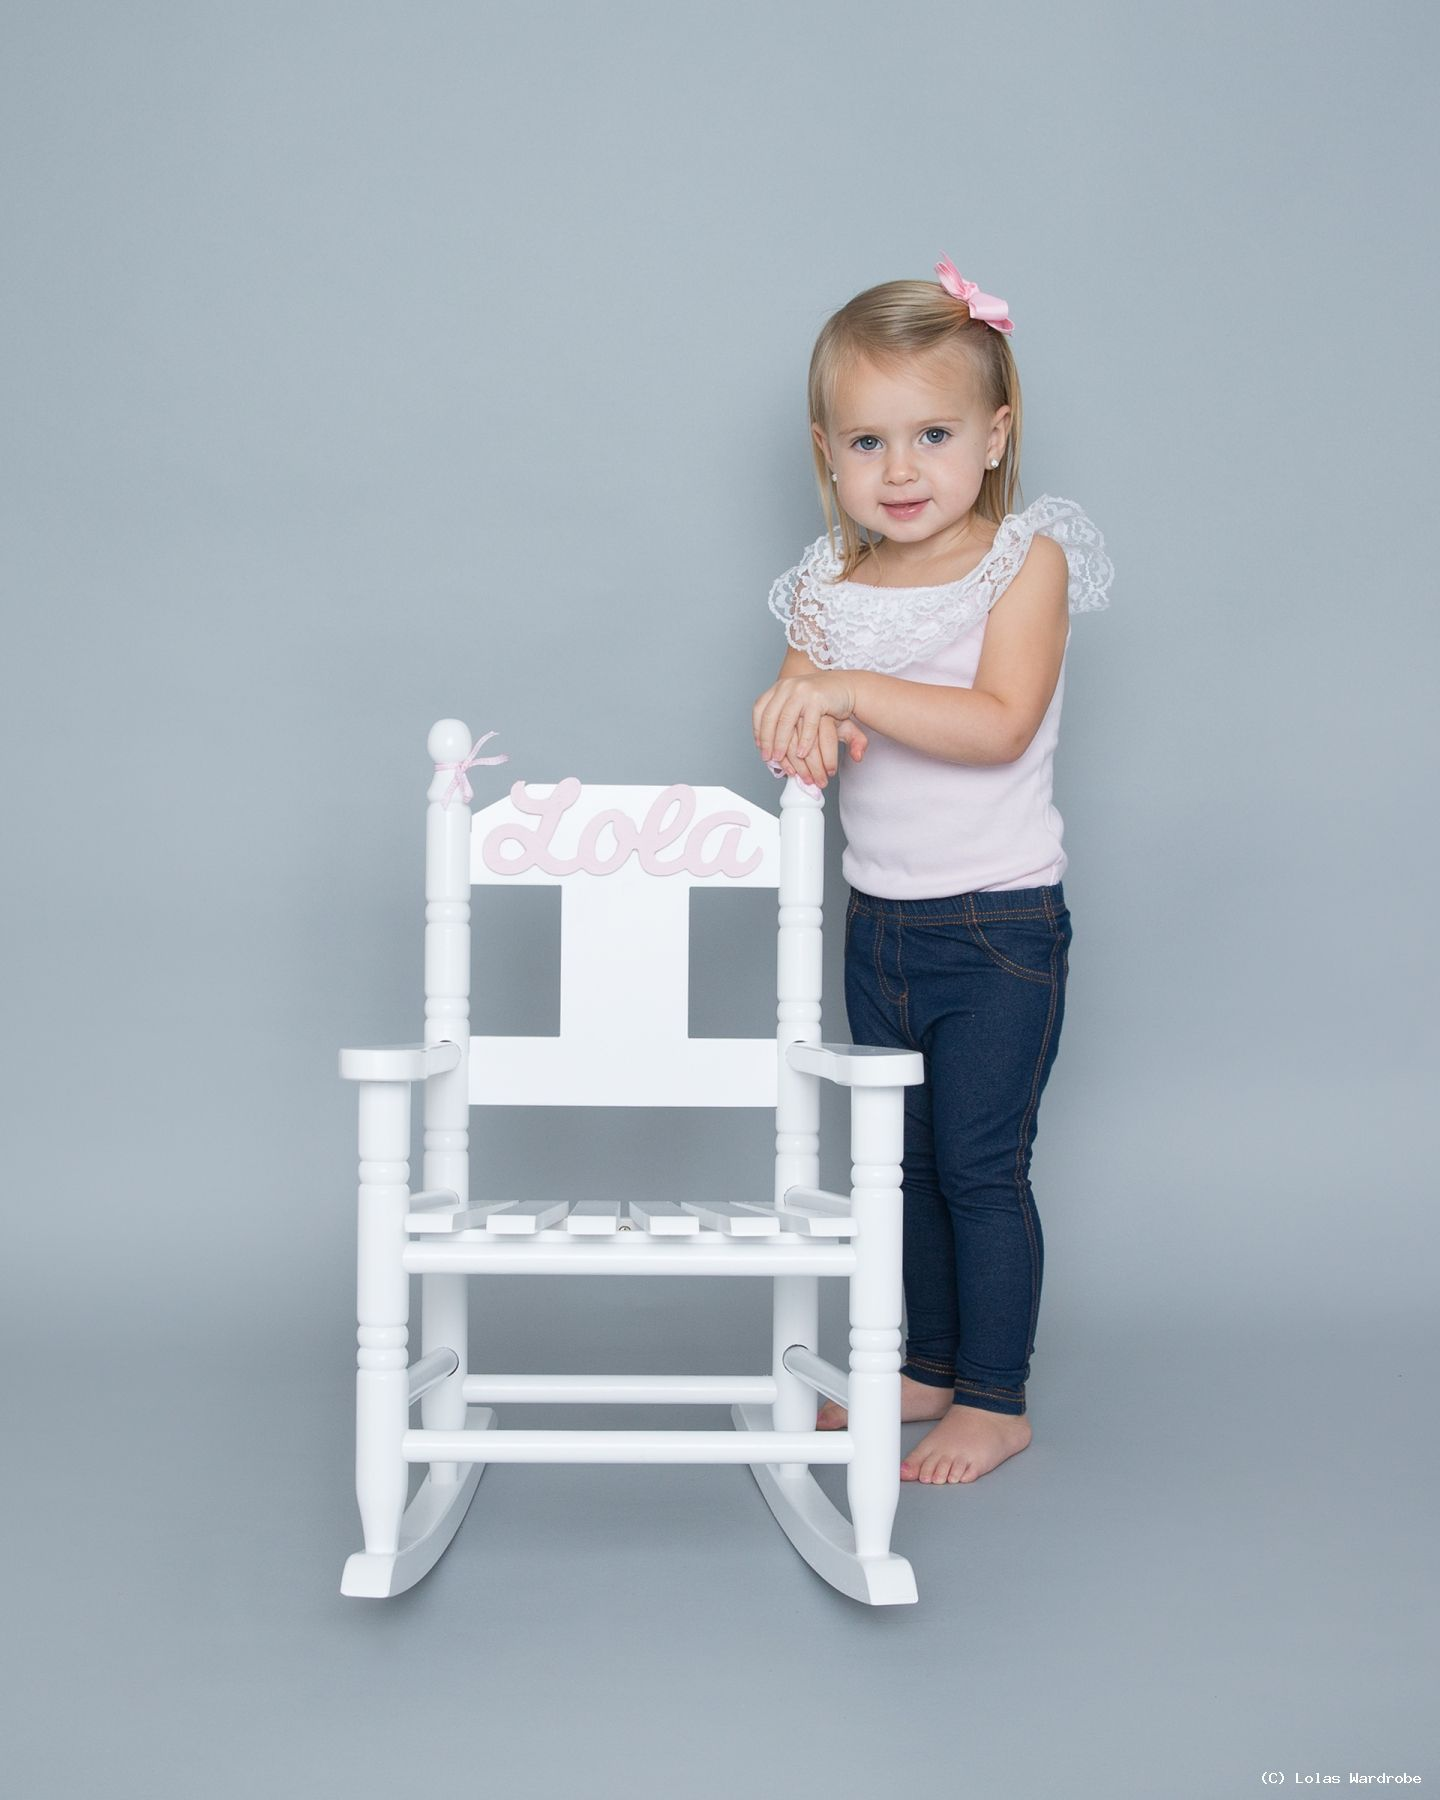 All products baby amp kids nursery furniture rocking chairs - Personalised Rocking Chair Lola S Nursery Toys Nursery Furniture